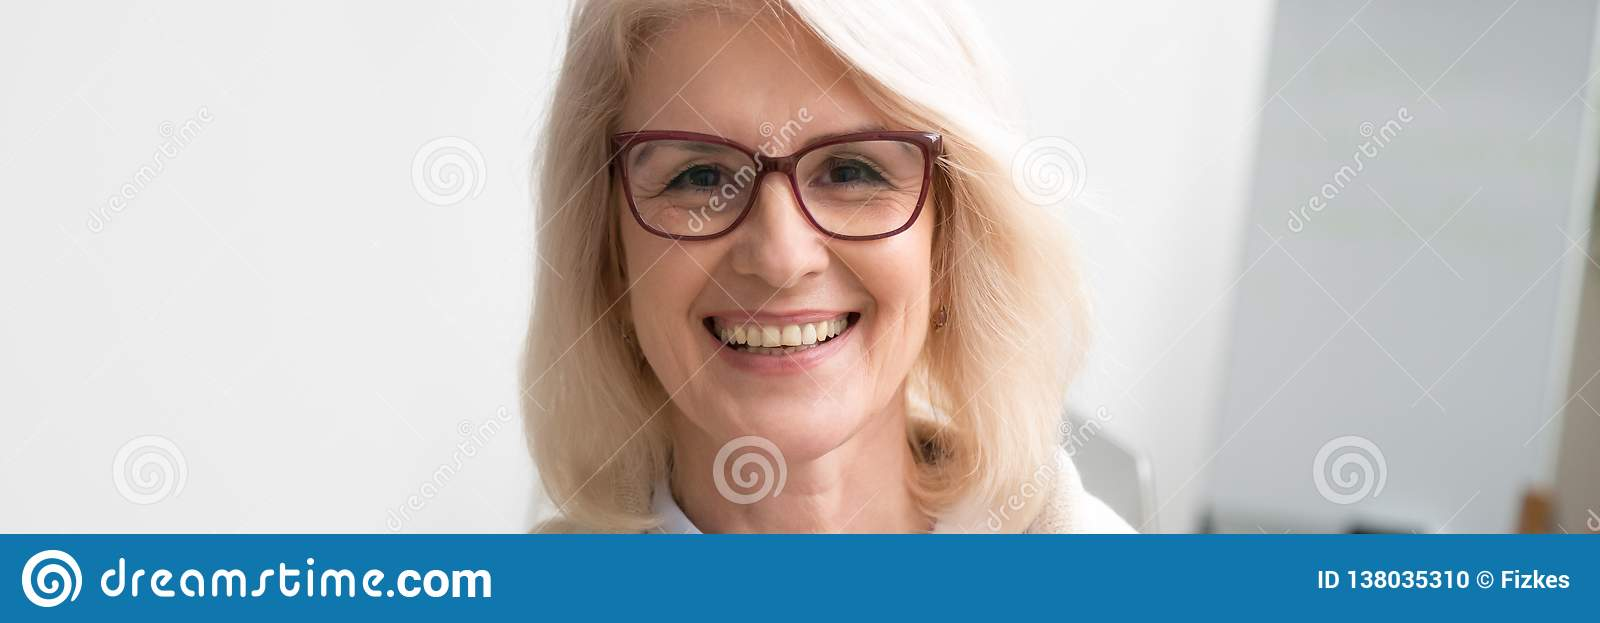 Horizontal image face of aged businesswoman smiling looking at camera